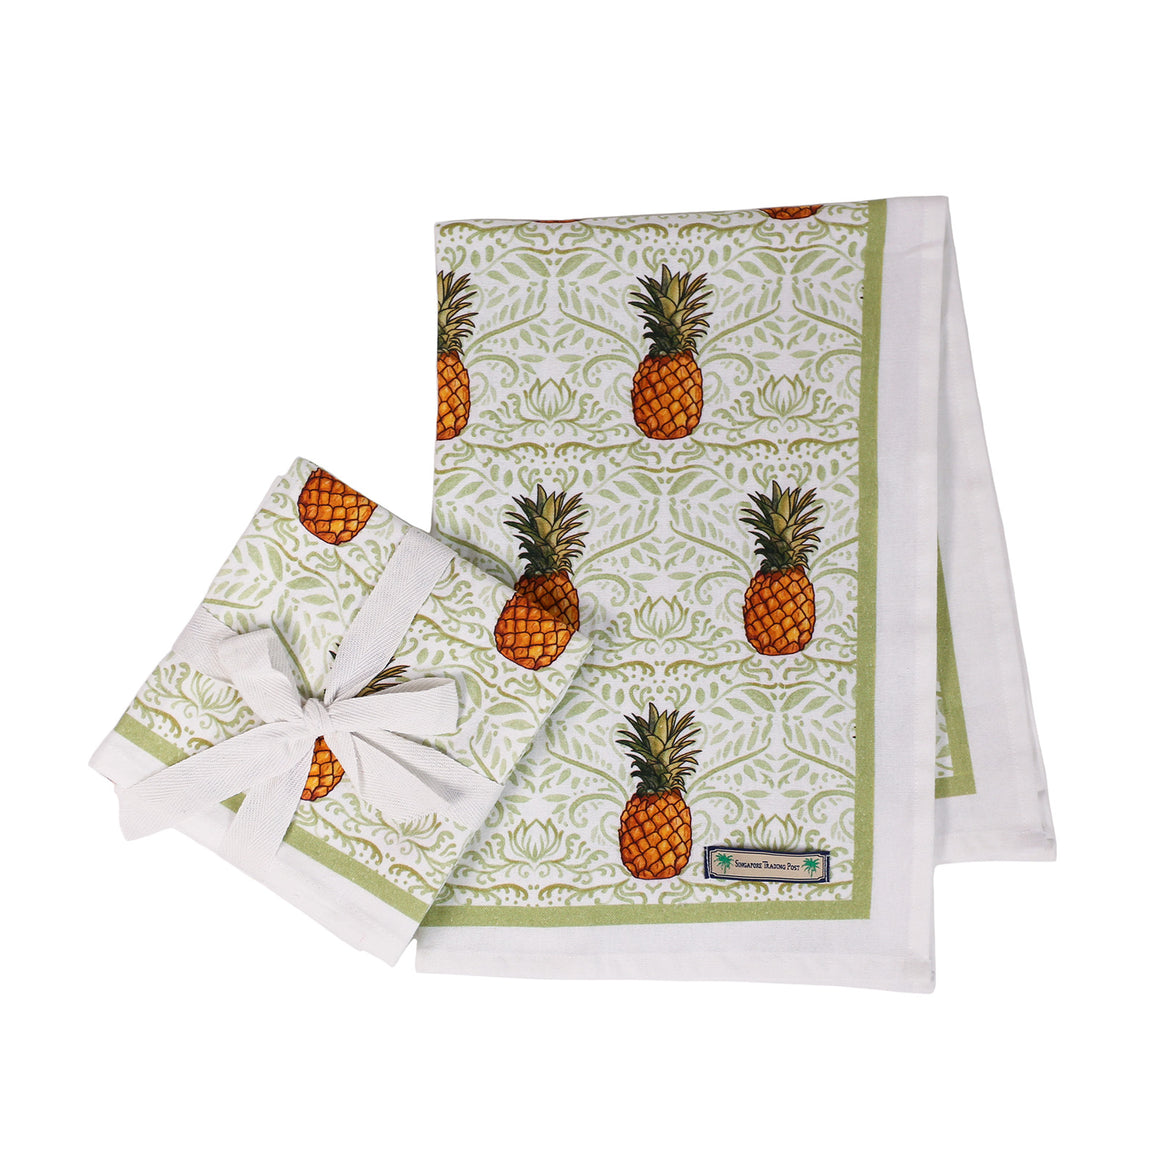 Pineapple tea towels - set of 2